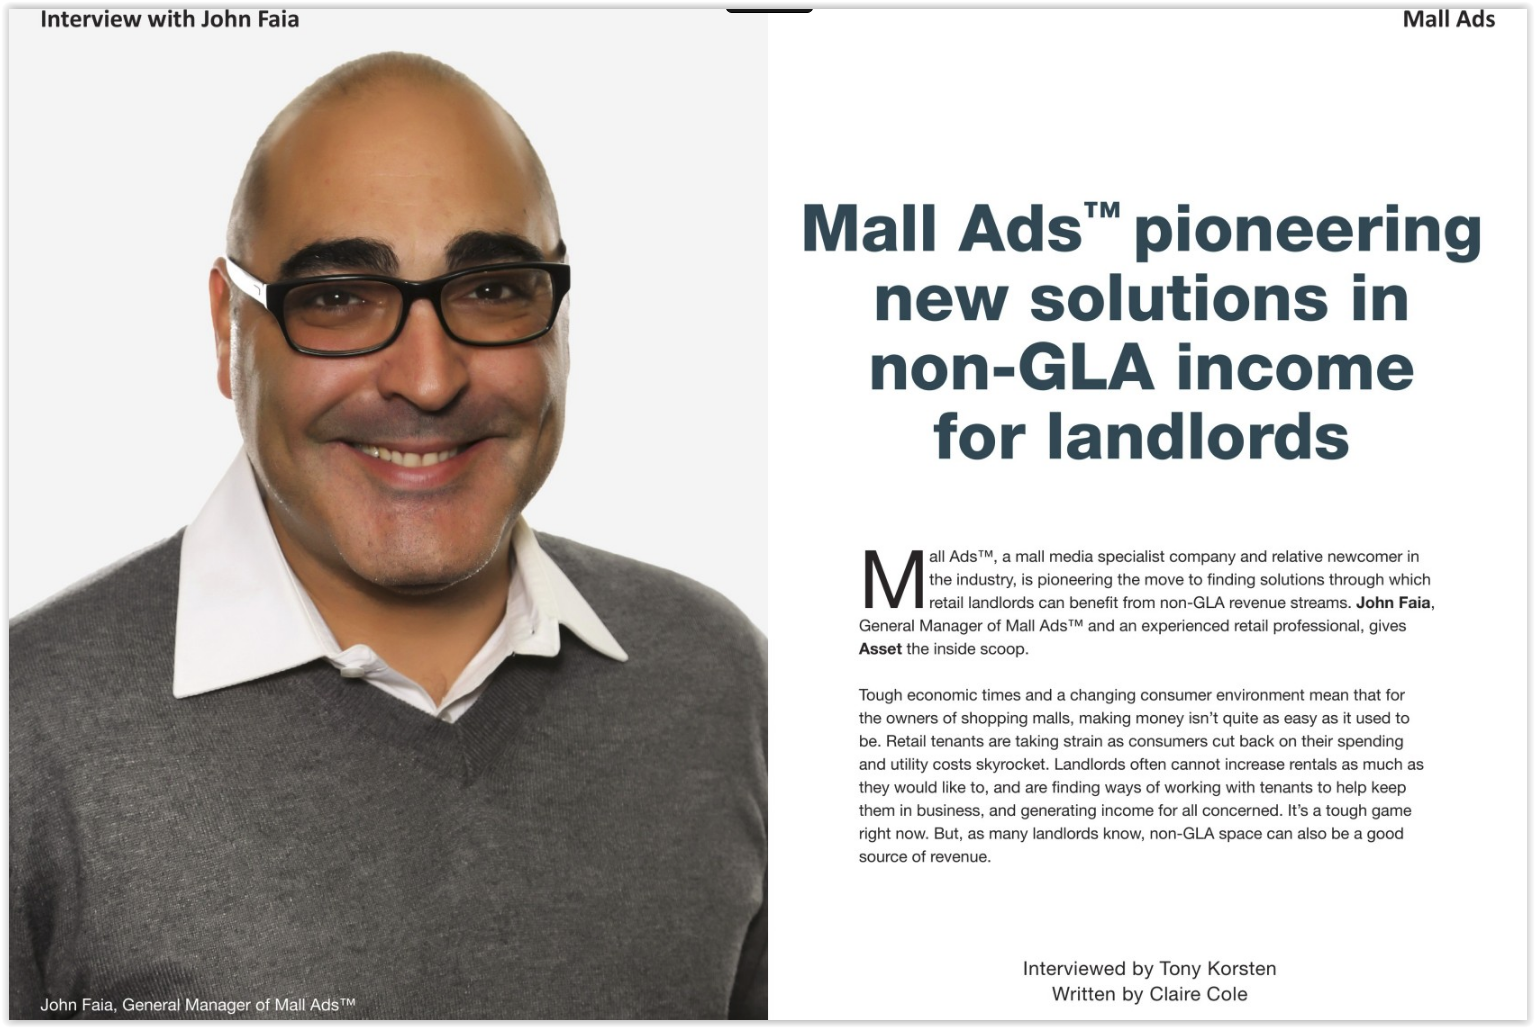 Mall Ads pioneering new solutions in non-GLA income for landlords